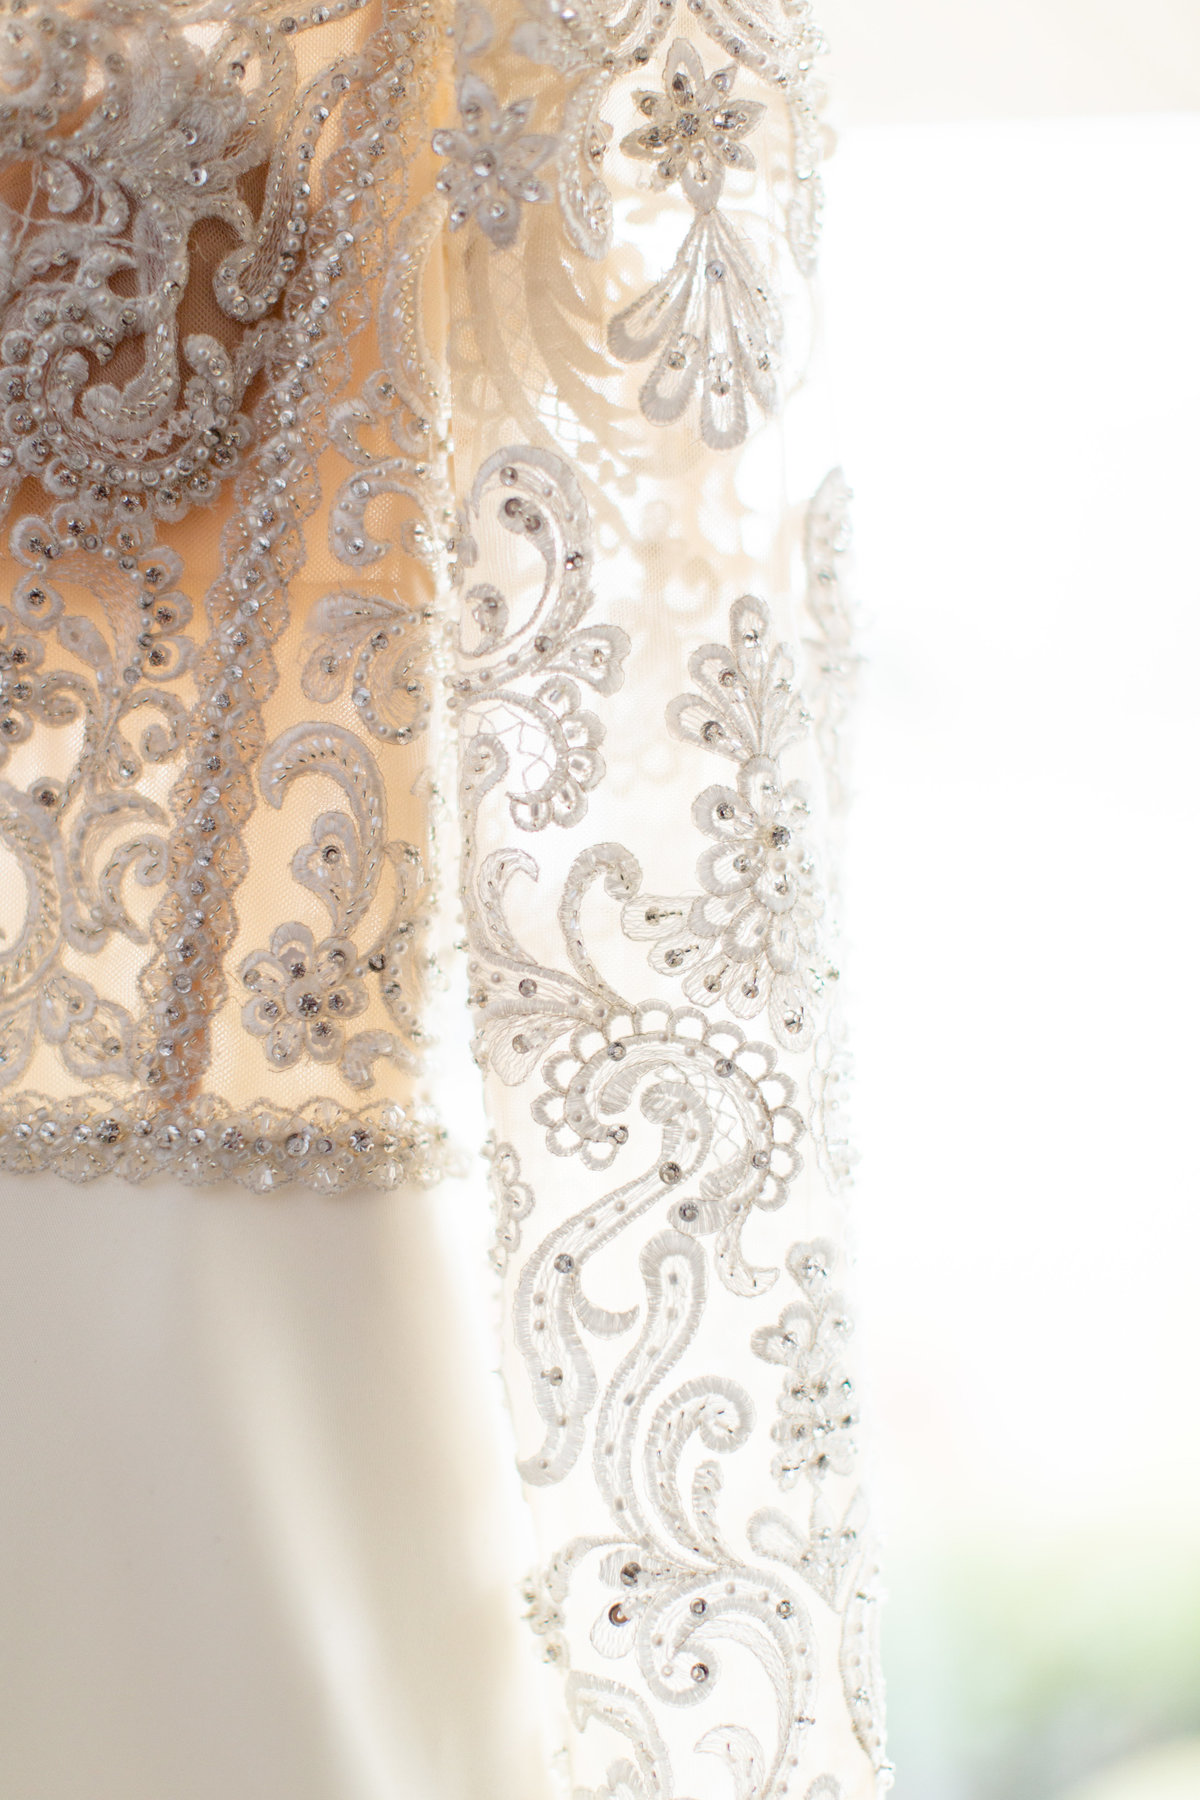 detail photo of bride's sleeve